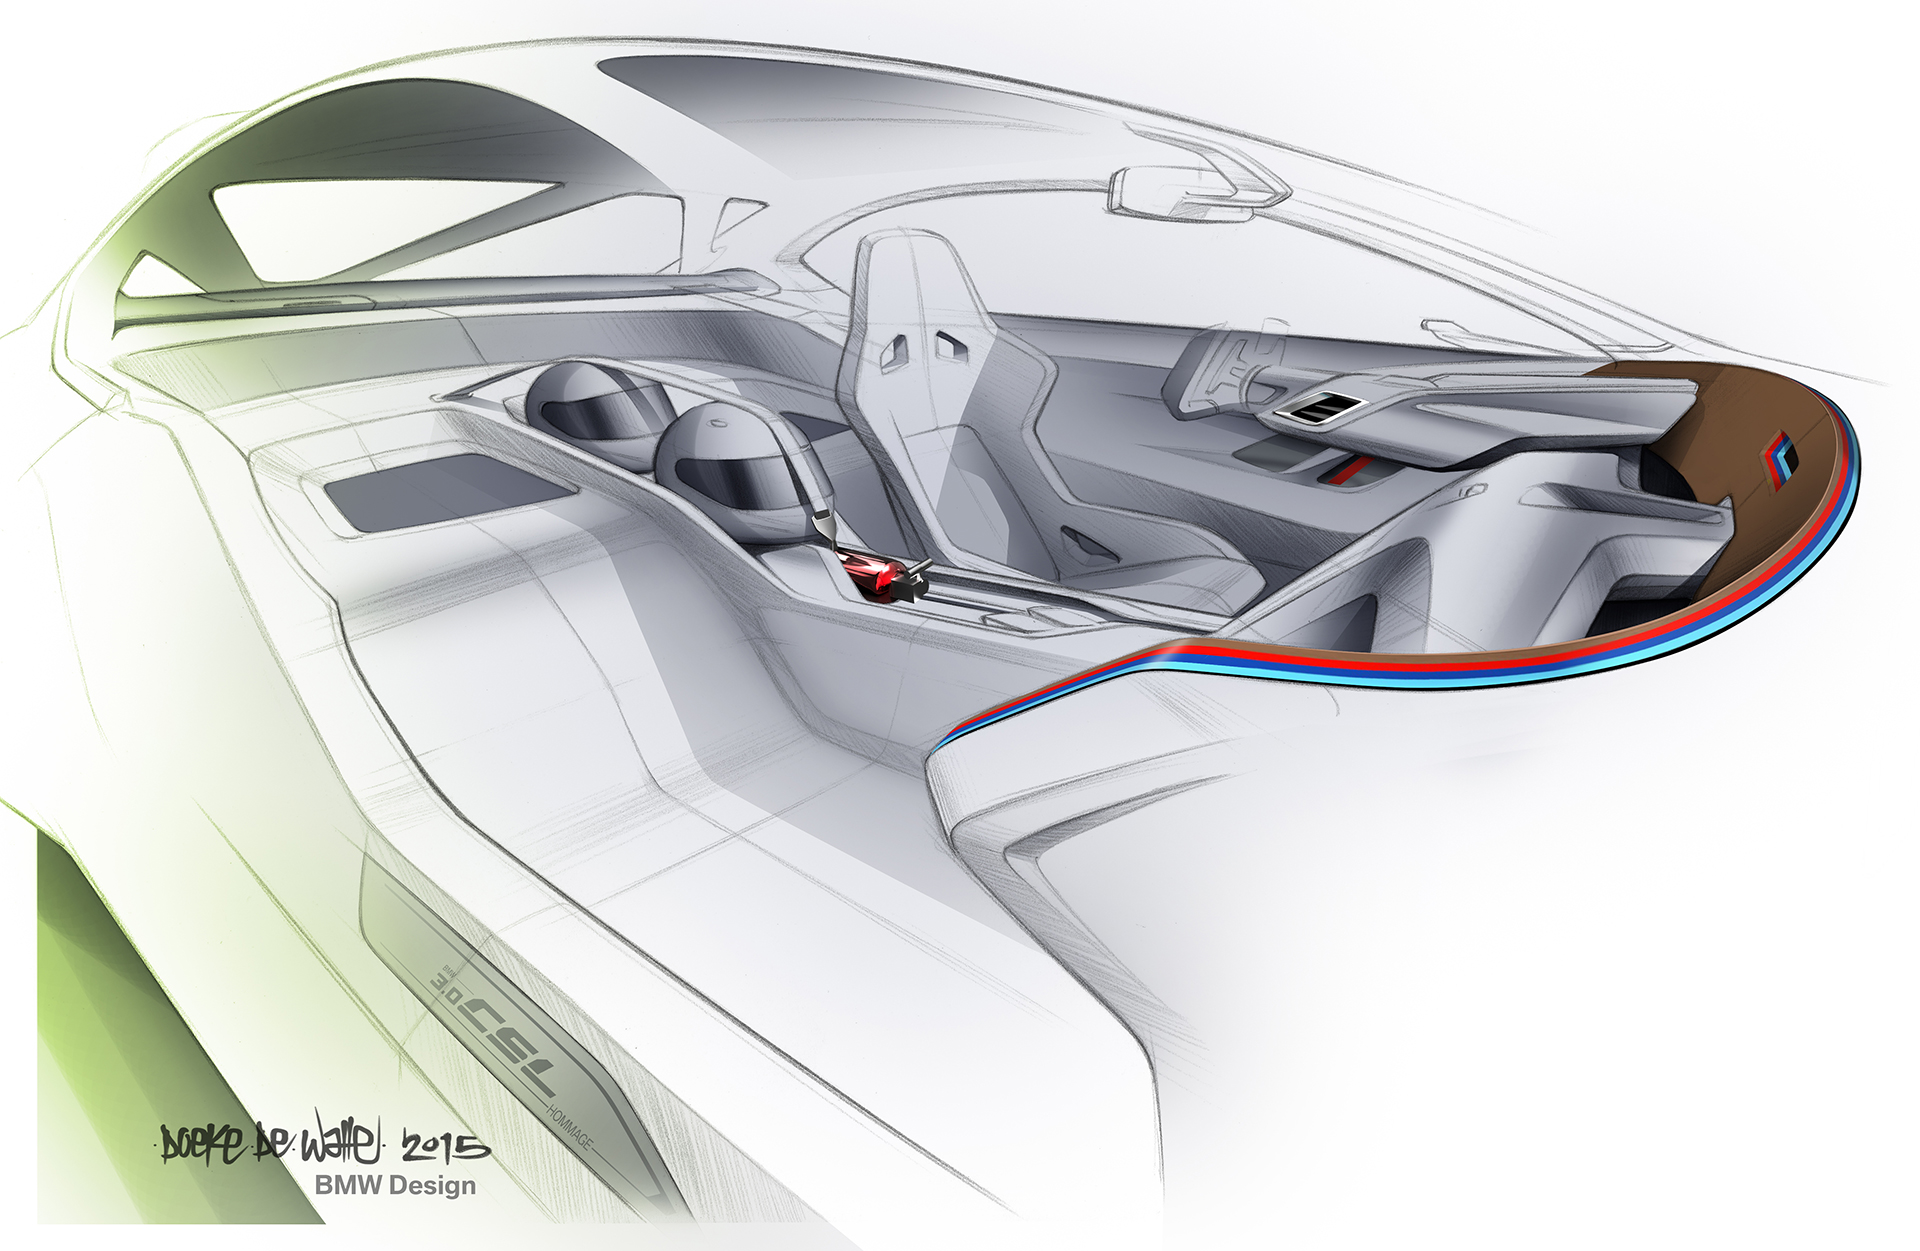 BMW 3.0 CSL Hommage - sketch interior